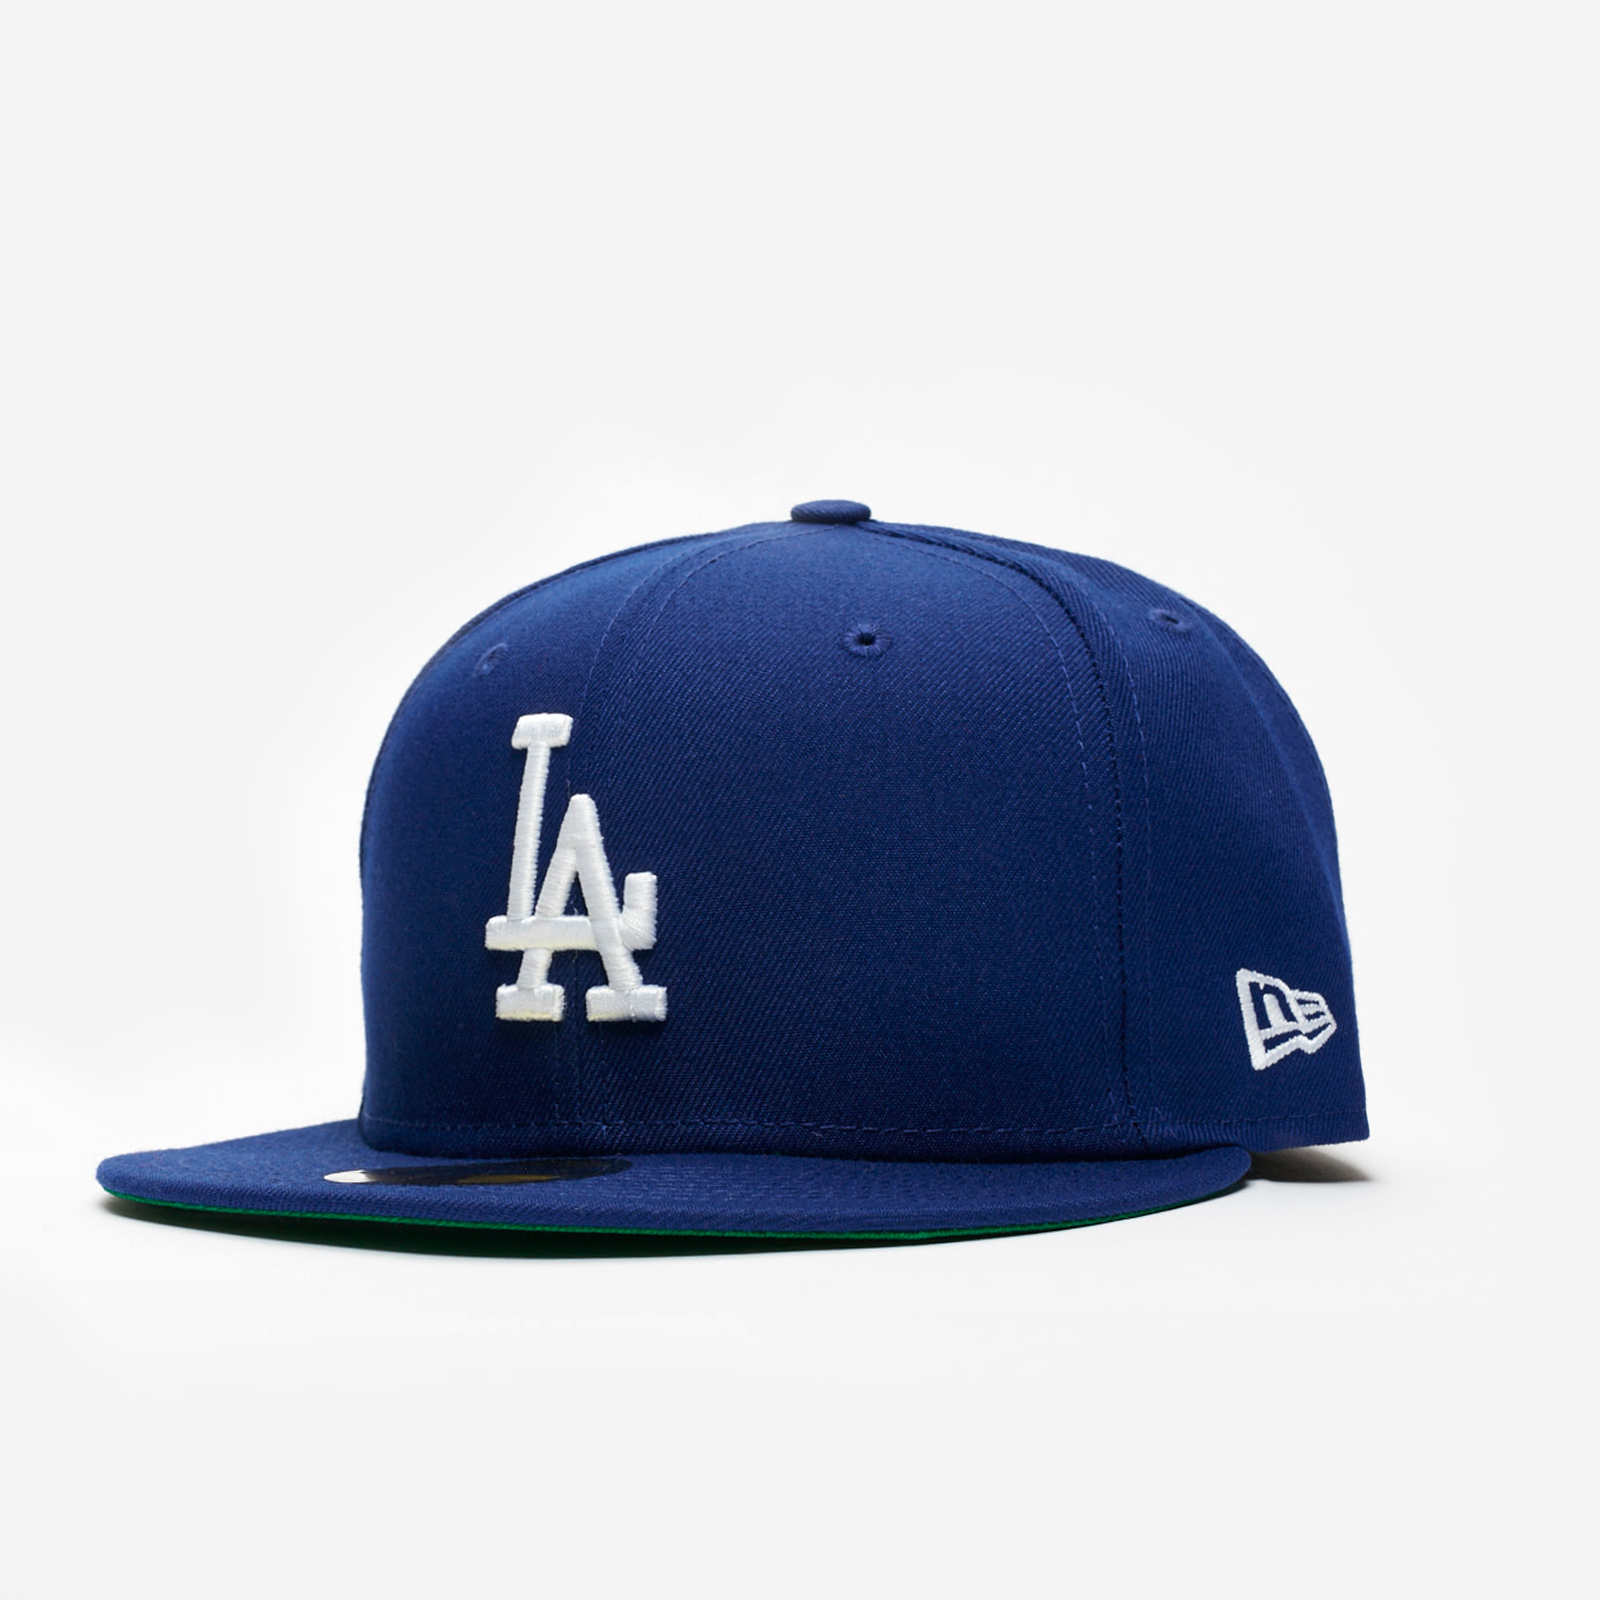 934778de20207 New Era MLB x SNS Los Angeles Dodgers - 11900630-otc ...